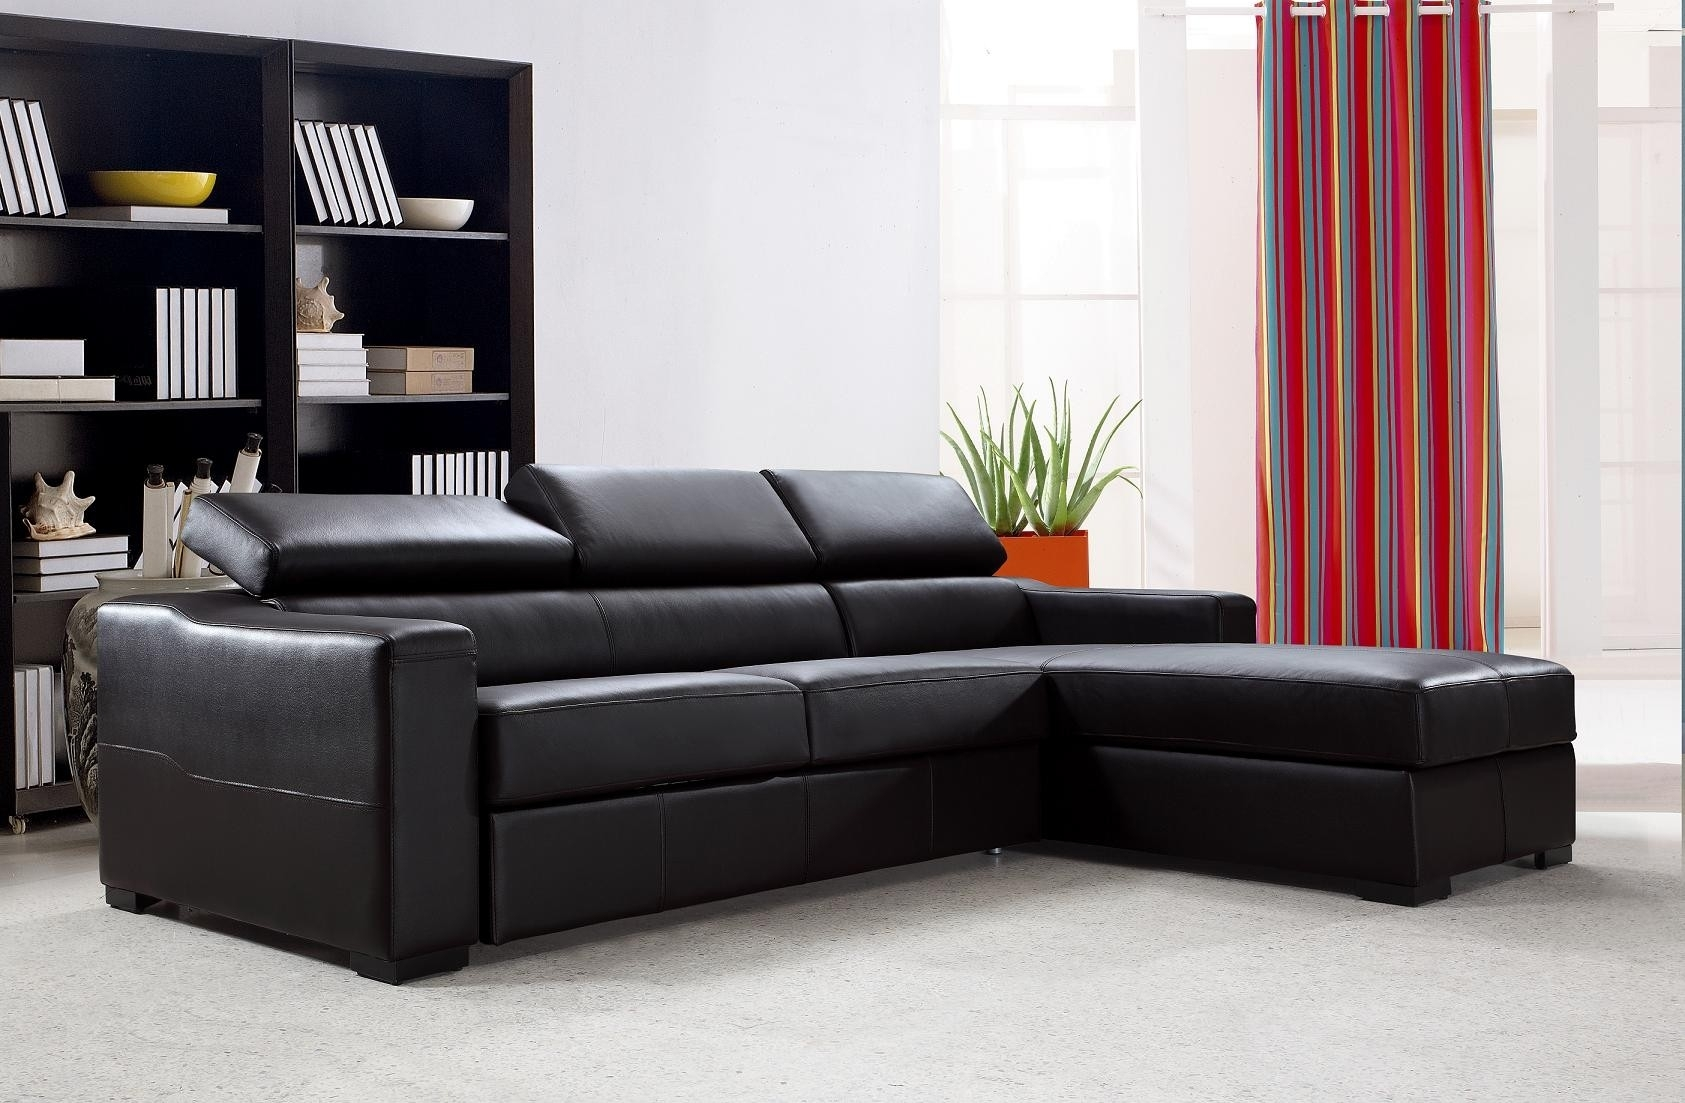 Sofa : Lovely Leather Sofa Bed Sectional Reversible Set With Storage in Leather Sofas With Storage (Image 7 of 10)